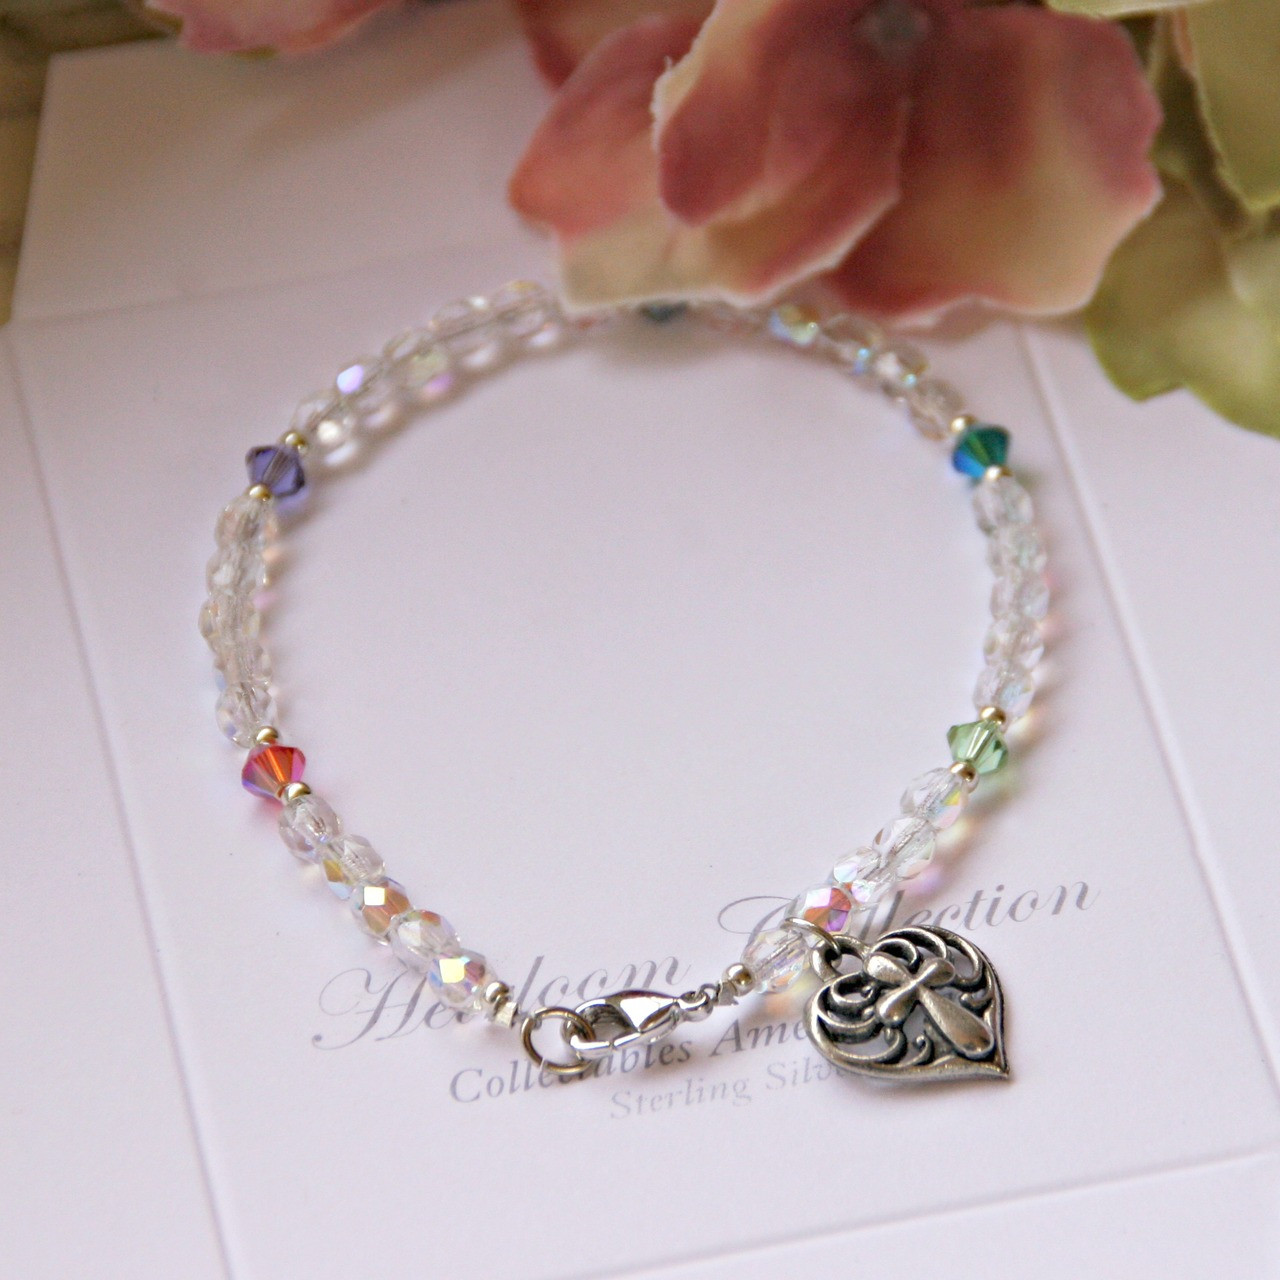 GG-40  Beautiful Crystal AB mixed with Swarovski Crystals Bracelet